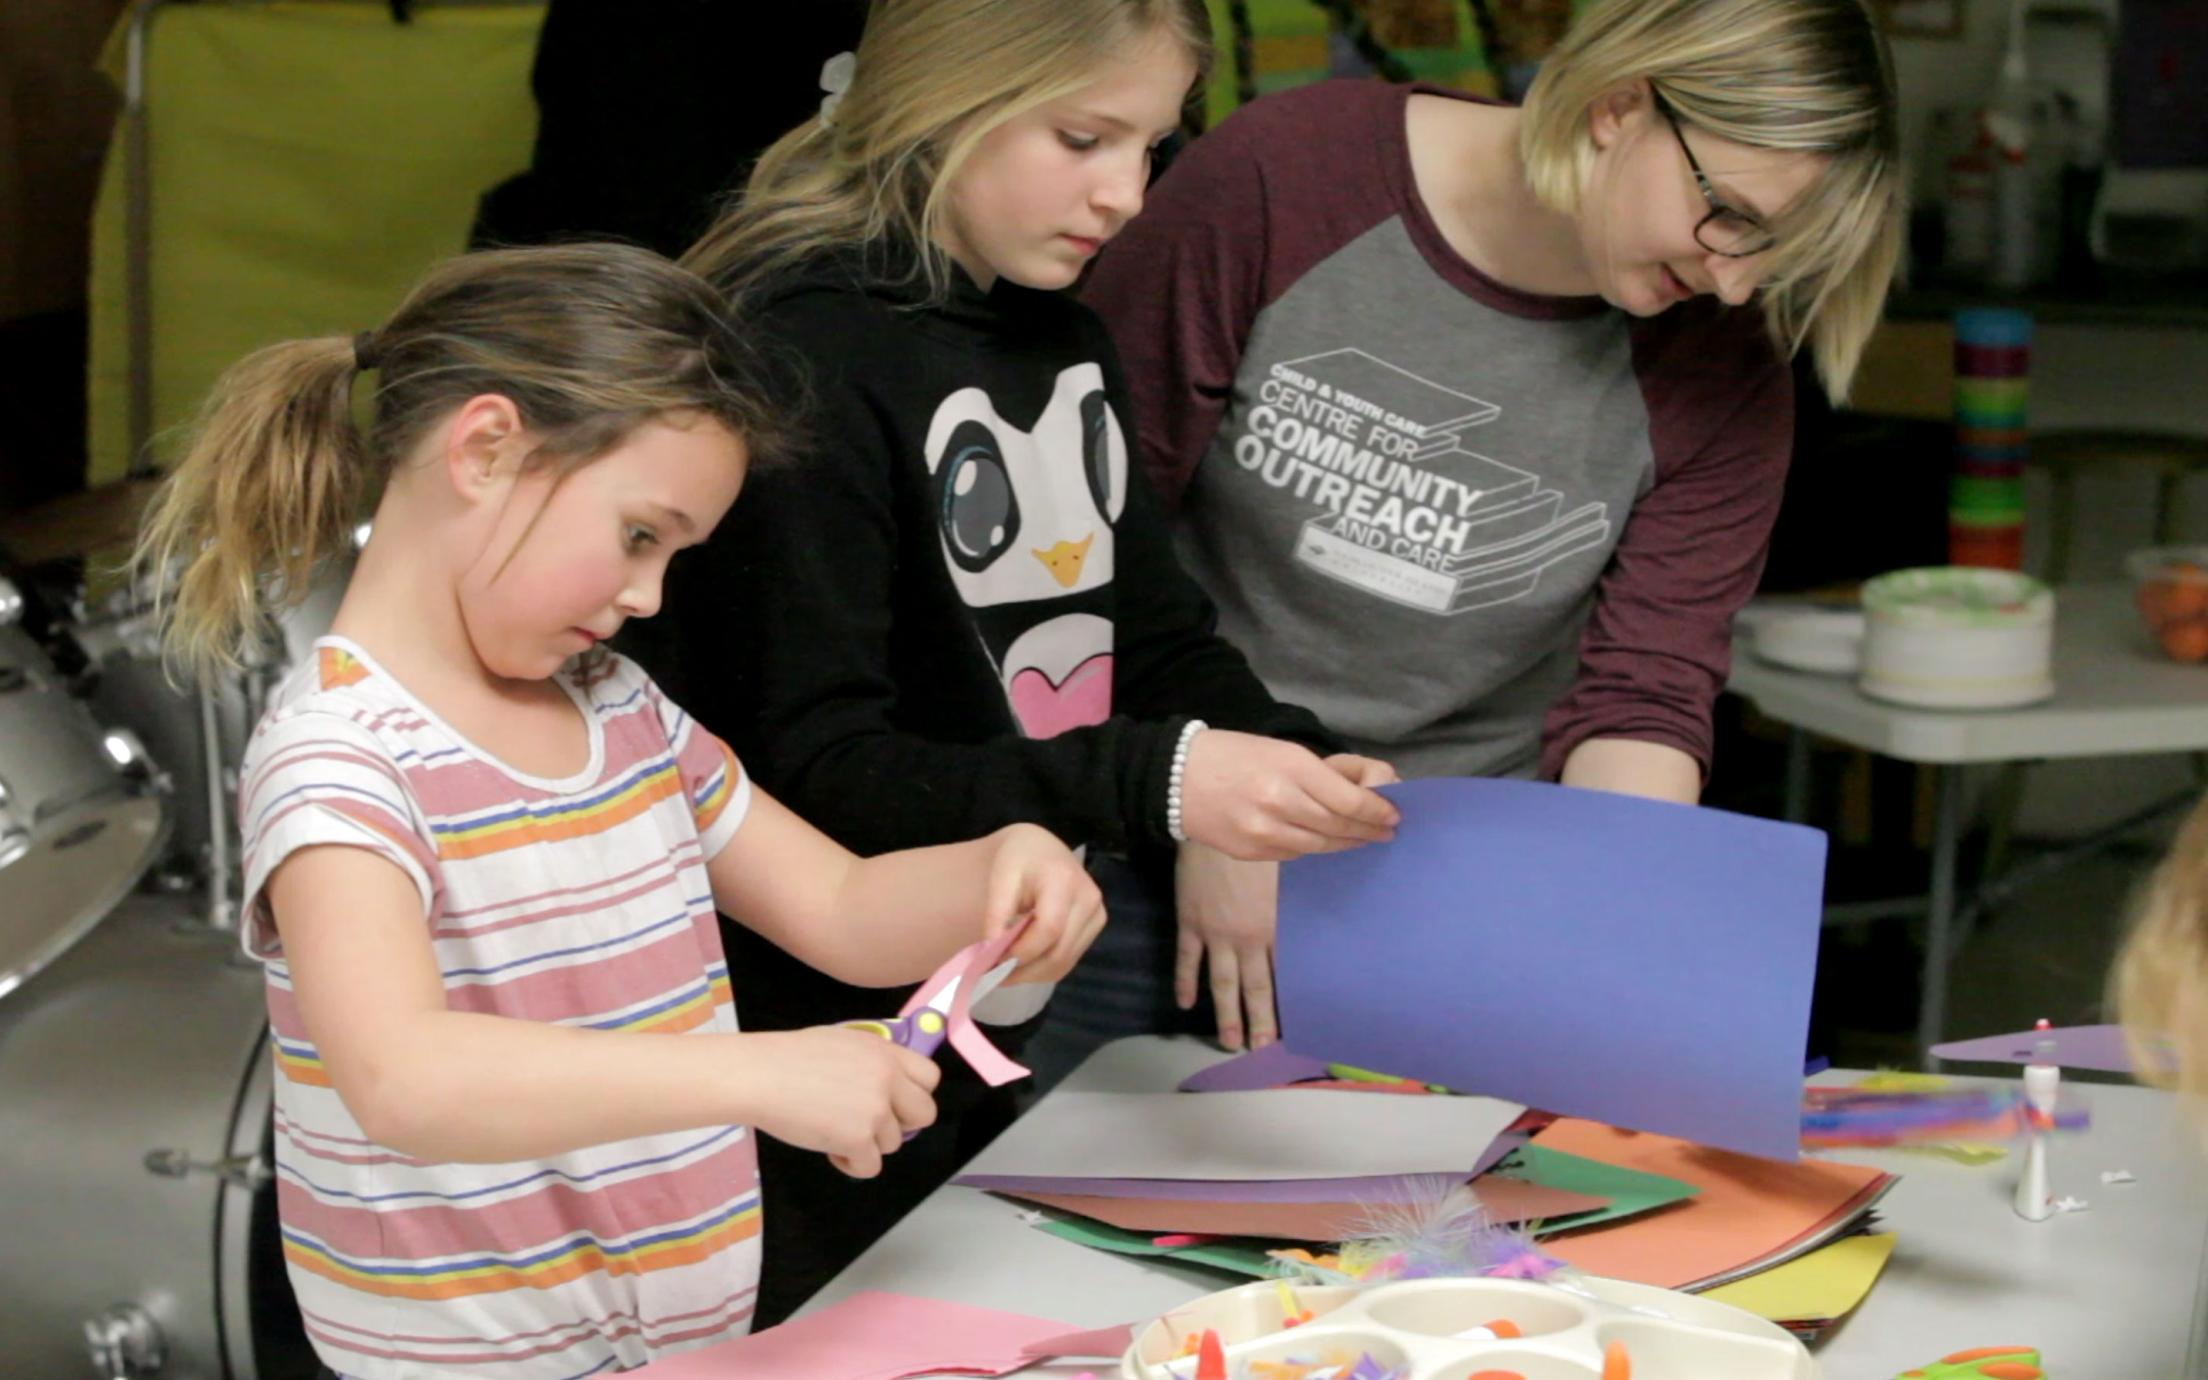 A Student of the Bachelor of Arts in Child and Youth Care program working with two girls